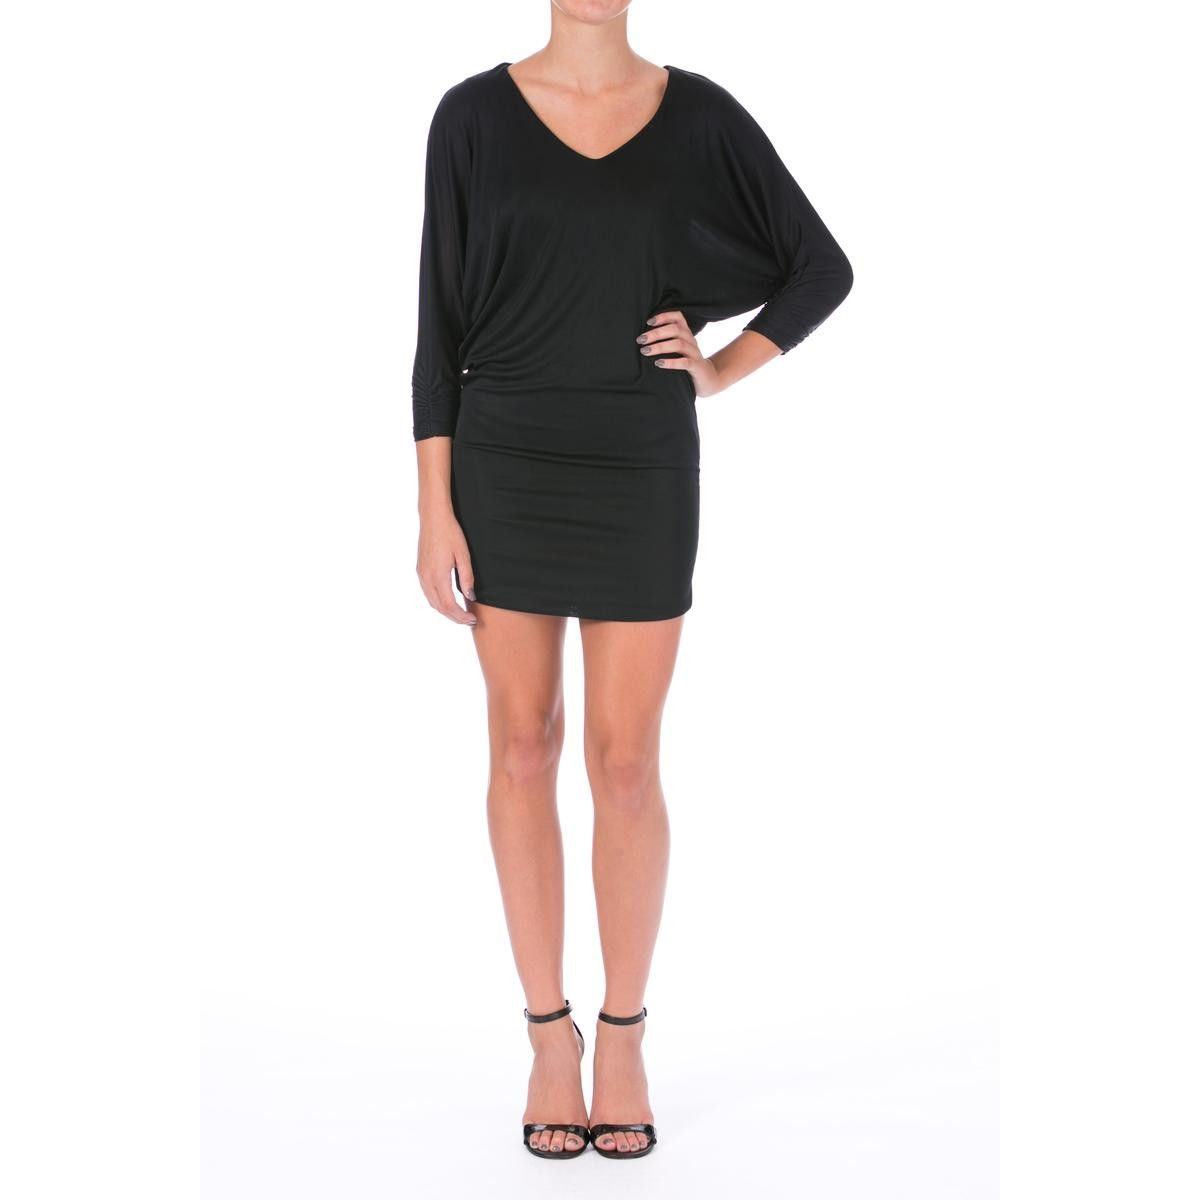 a95defeca4d Guess by Marciano Womens Matte Jersey Dolman Sleeves Cocktail Dress ...